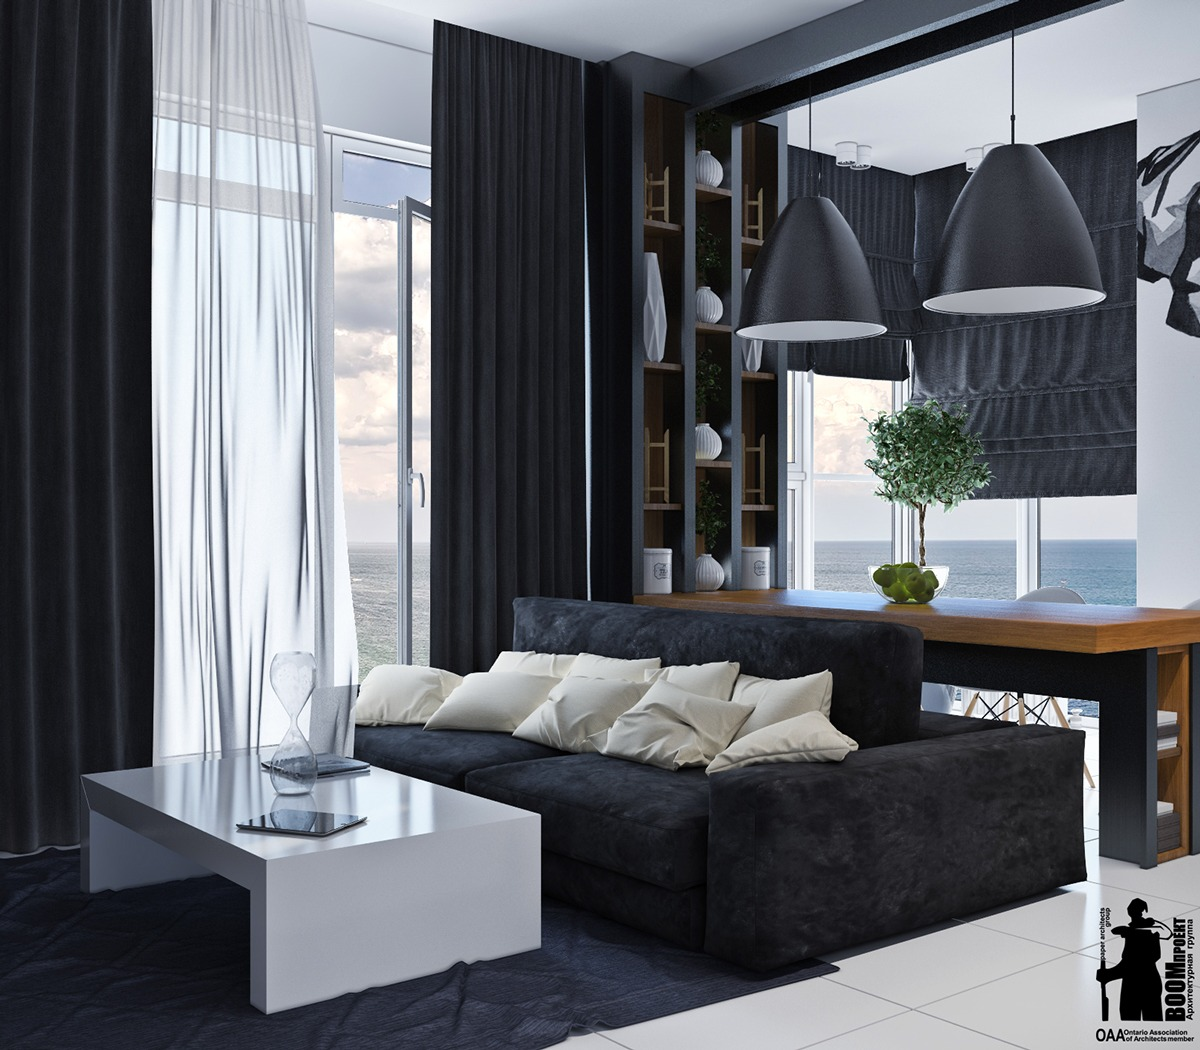 Minimalist Small Living Room: Artistic Apartments With Monochromatic Color Schemes